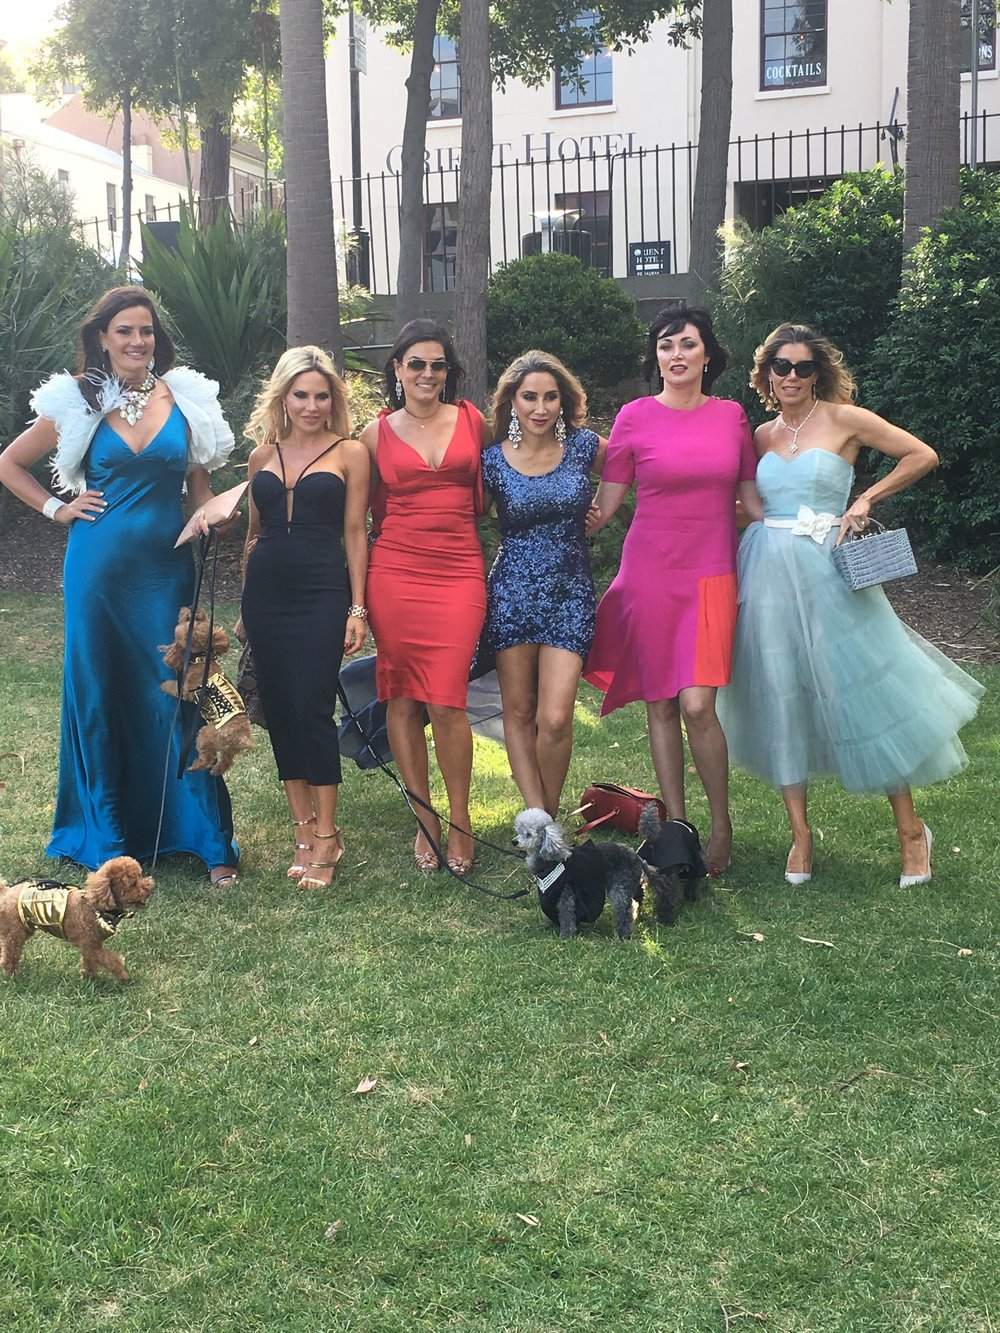 The girls and puppies at the cat and dog wedding  - Behind the Scenes of The Real Housewives of Sydney Episode 11 Season 1.jpg